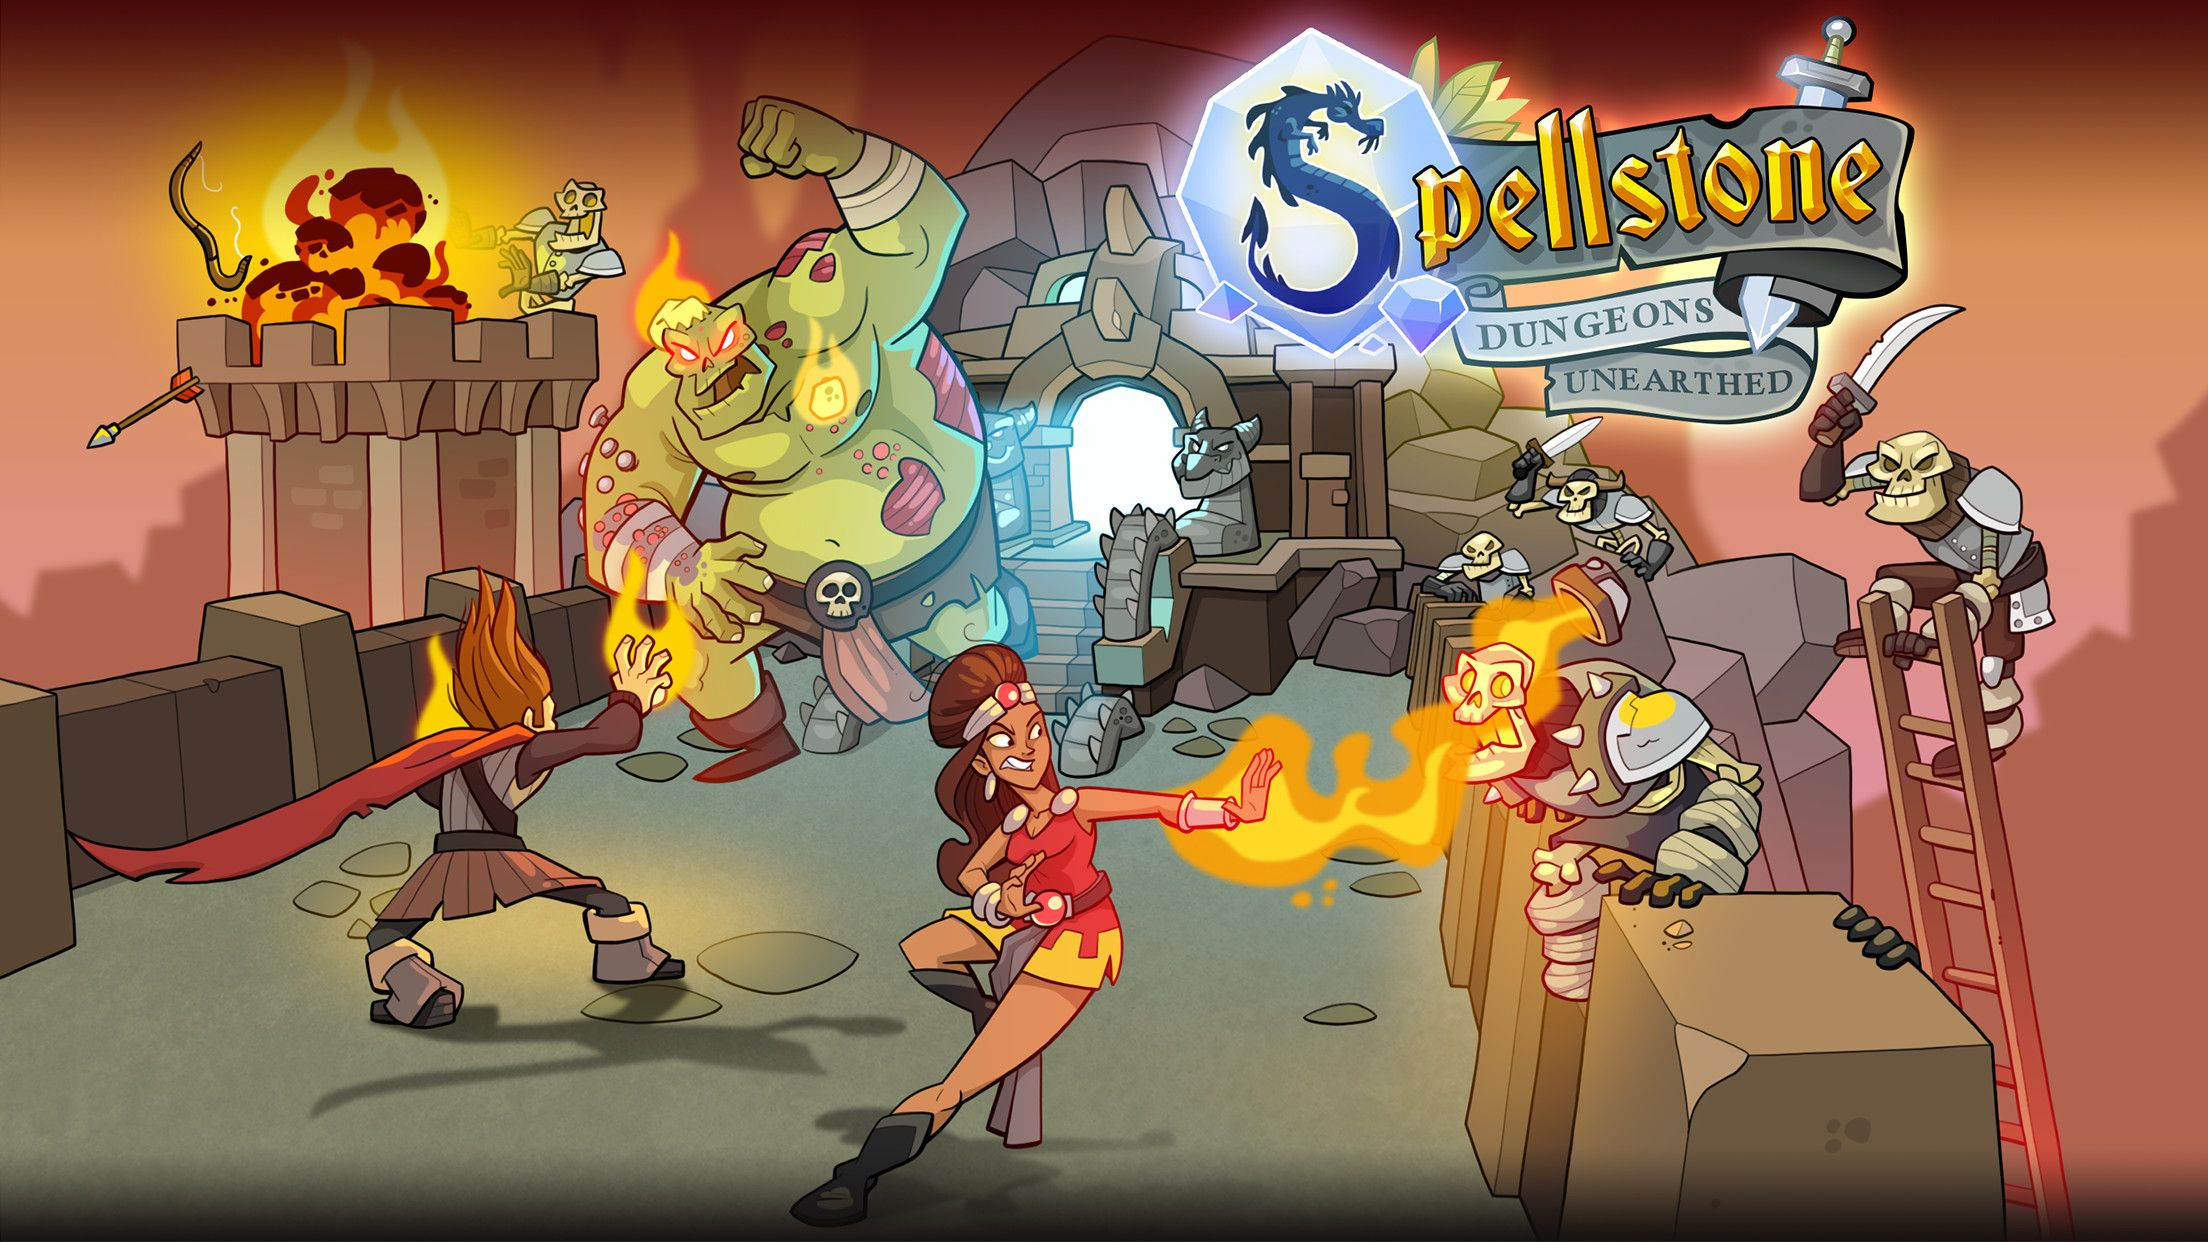 Fantasy Card Game Spellstone is out on Steam KeenGamer